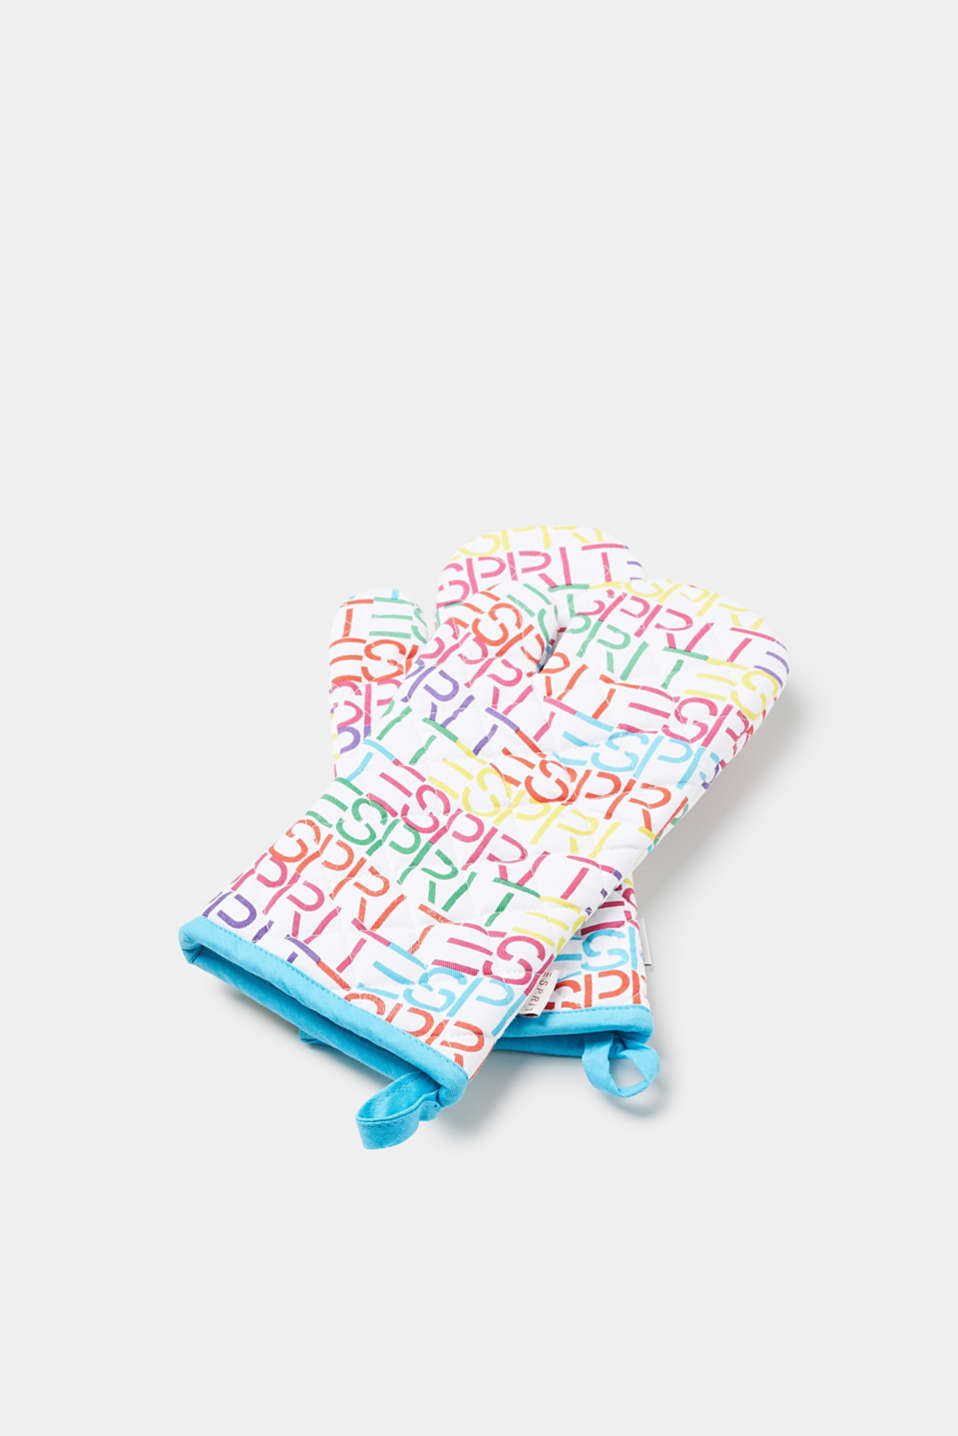 Esprit - Cotton oven gloves with a bright logo print